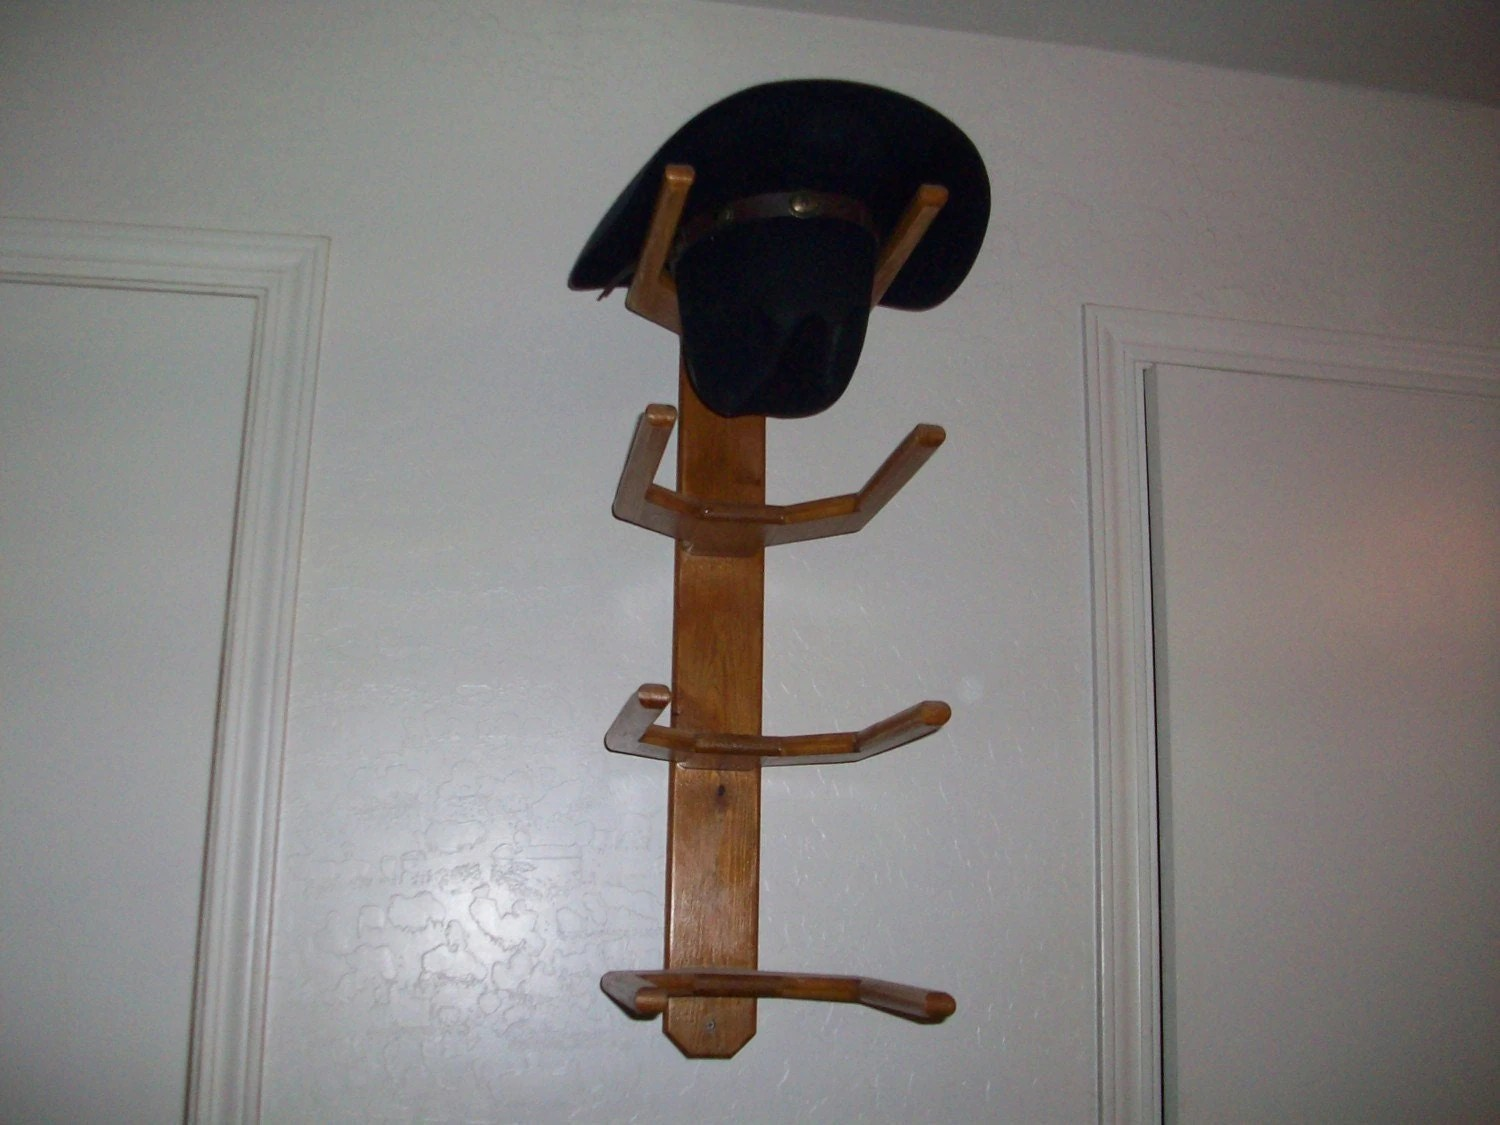 Hat Holders For Walls Cowboy Western Hat Rack Wall Mount For 4 Hats By Bormanrrranch